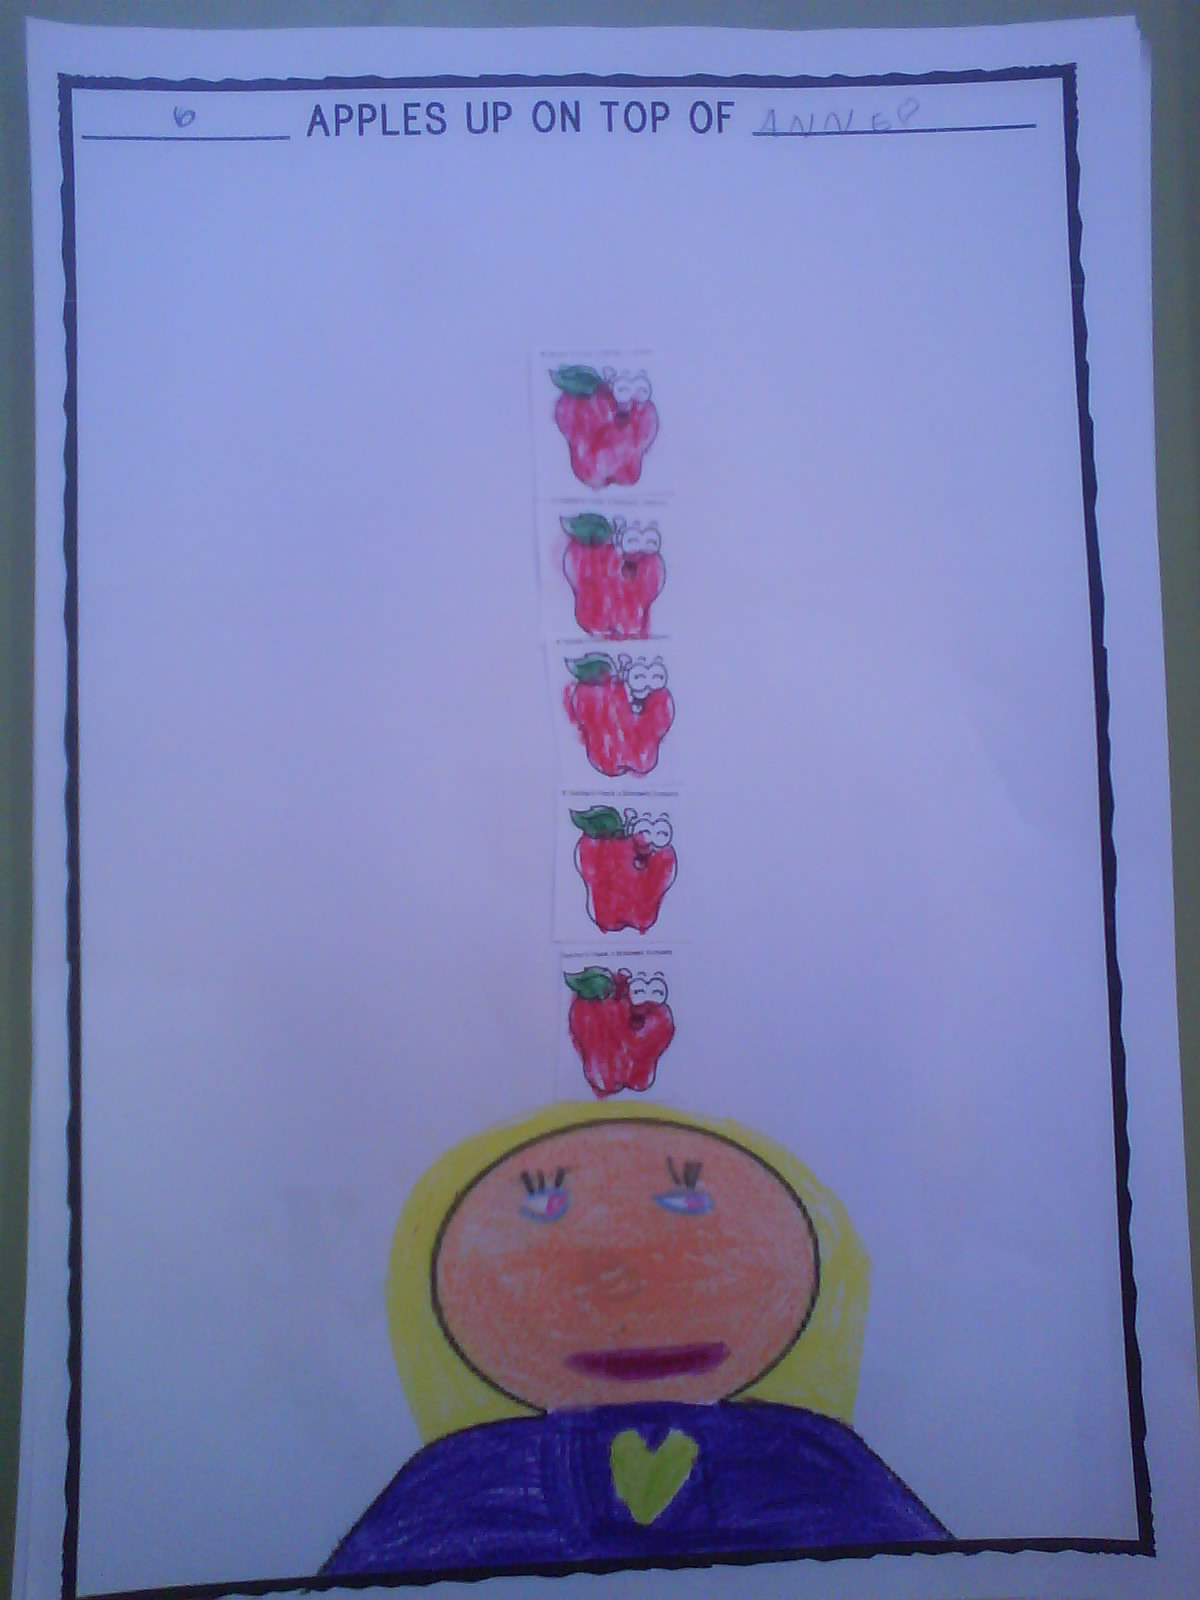 The Teaching Express An Apple Investigation And 10 Apples Up On Top By Dr Seuss